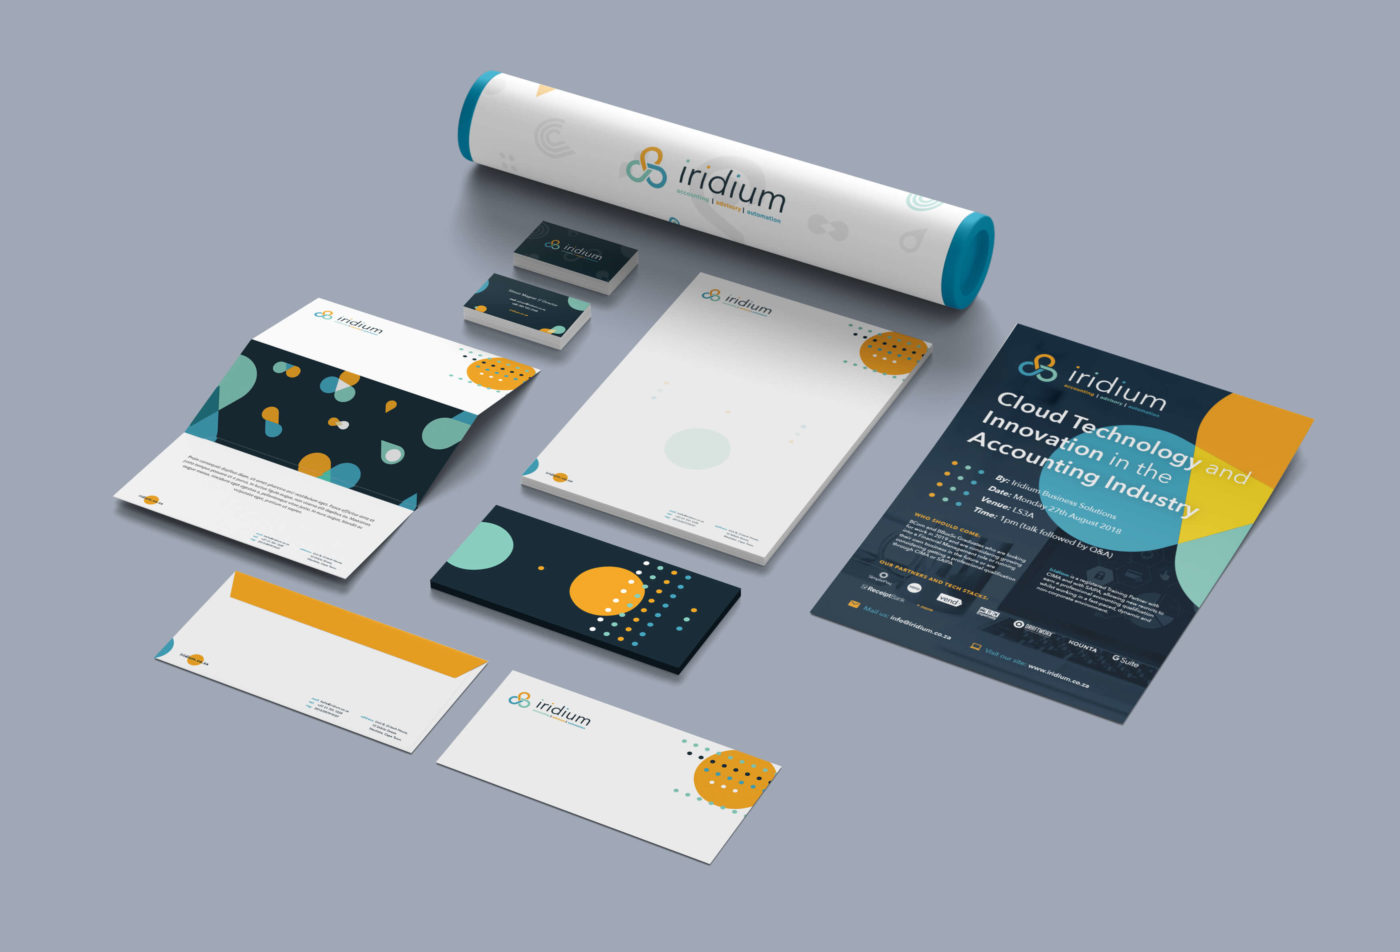 Iridium Corporate Identity Design